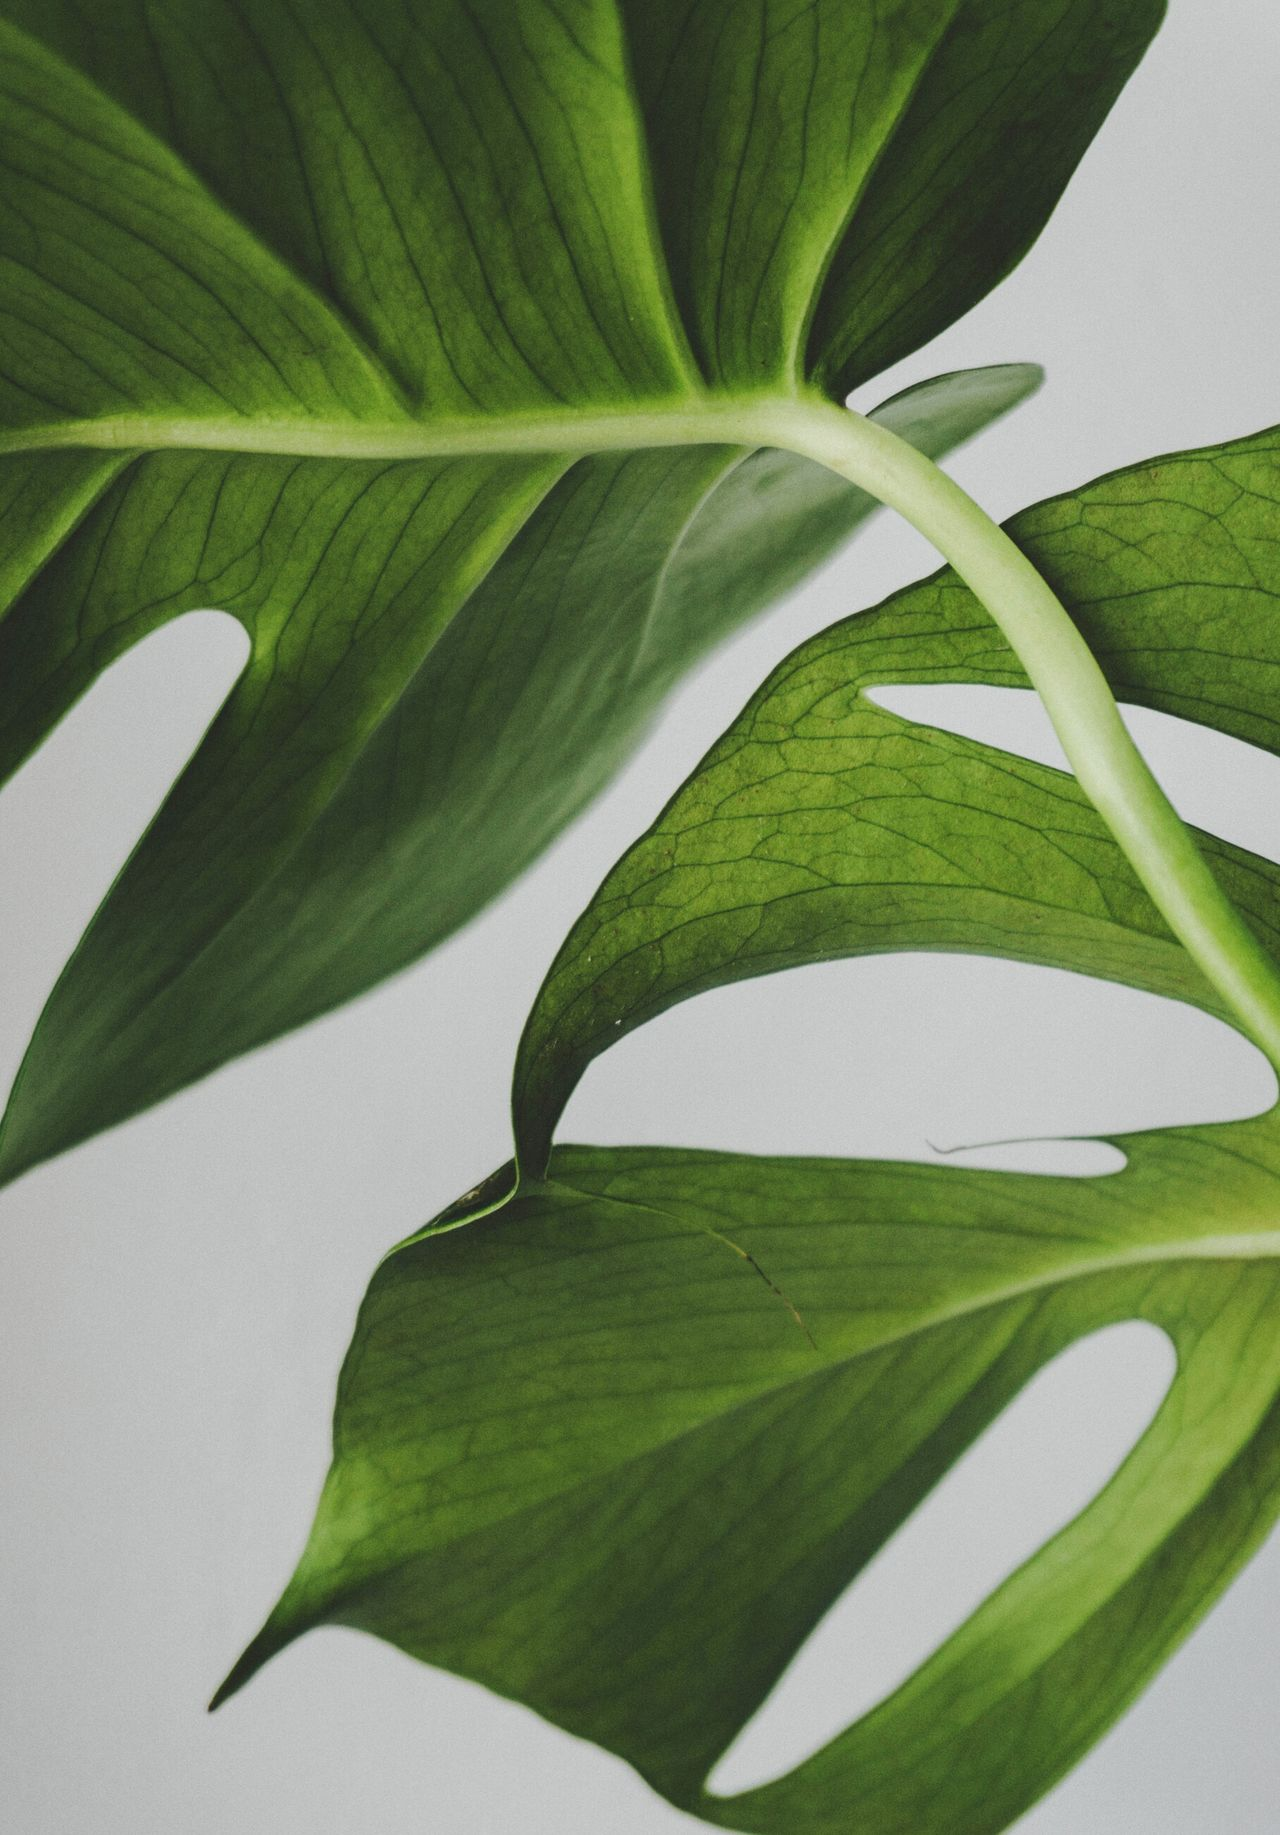 leaf Nature Green color Plant leaf vein close-up Growth no people full frame abstract Freshness beauty in Nature day Photosynthesis greenery homesweethome simplicity minimal white background houseplant Bright potted plant plantlife Minimalist lessismore